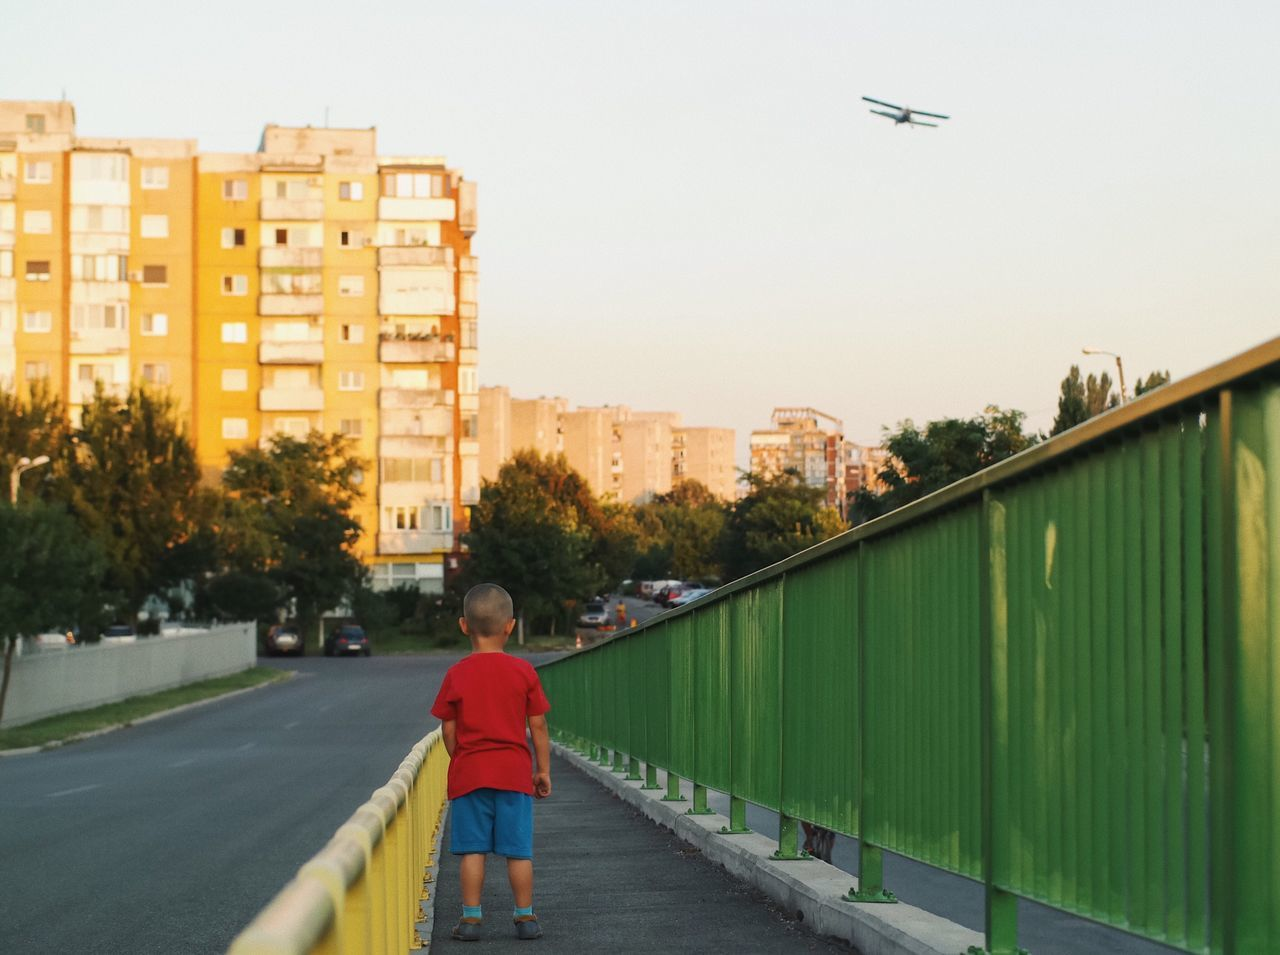 Urban attraction... Plane Architecture Childhood Building Exterior City Flying Urban Child Summer City Life Cityscape People Street Fashion Details Of My Life Lifestyles Having Fun VSCO Travel Casual Clothing Standing Leisure Activity Made In Romania Outdoors Kid Stationary The Architect - 2017 EyeEm Awards The Street Photographer - 2017 EyeEm Awards